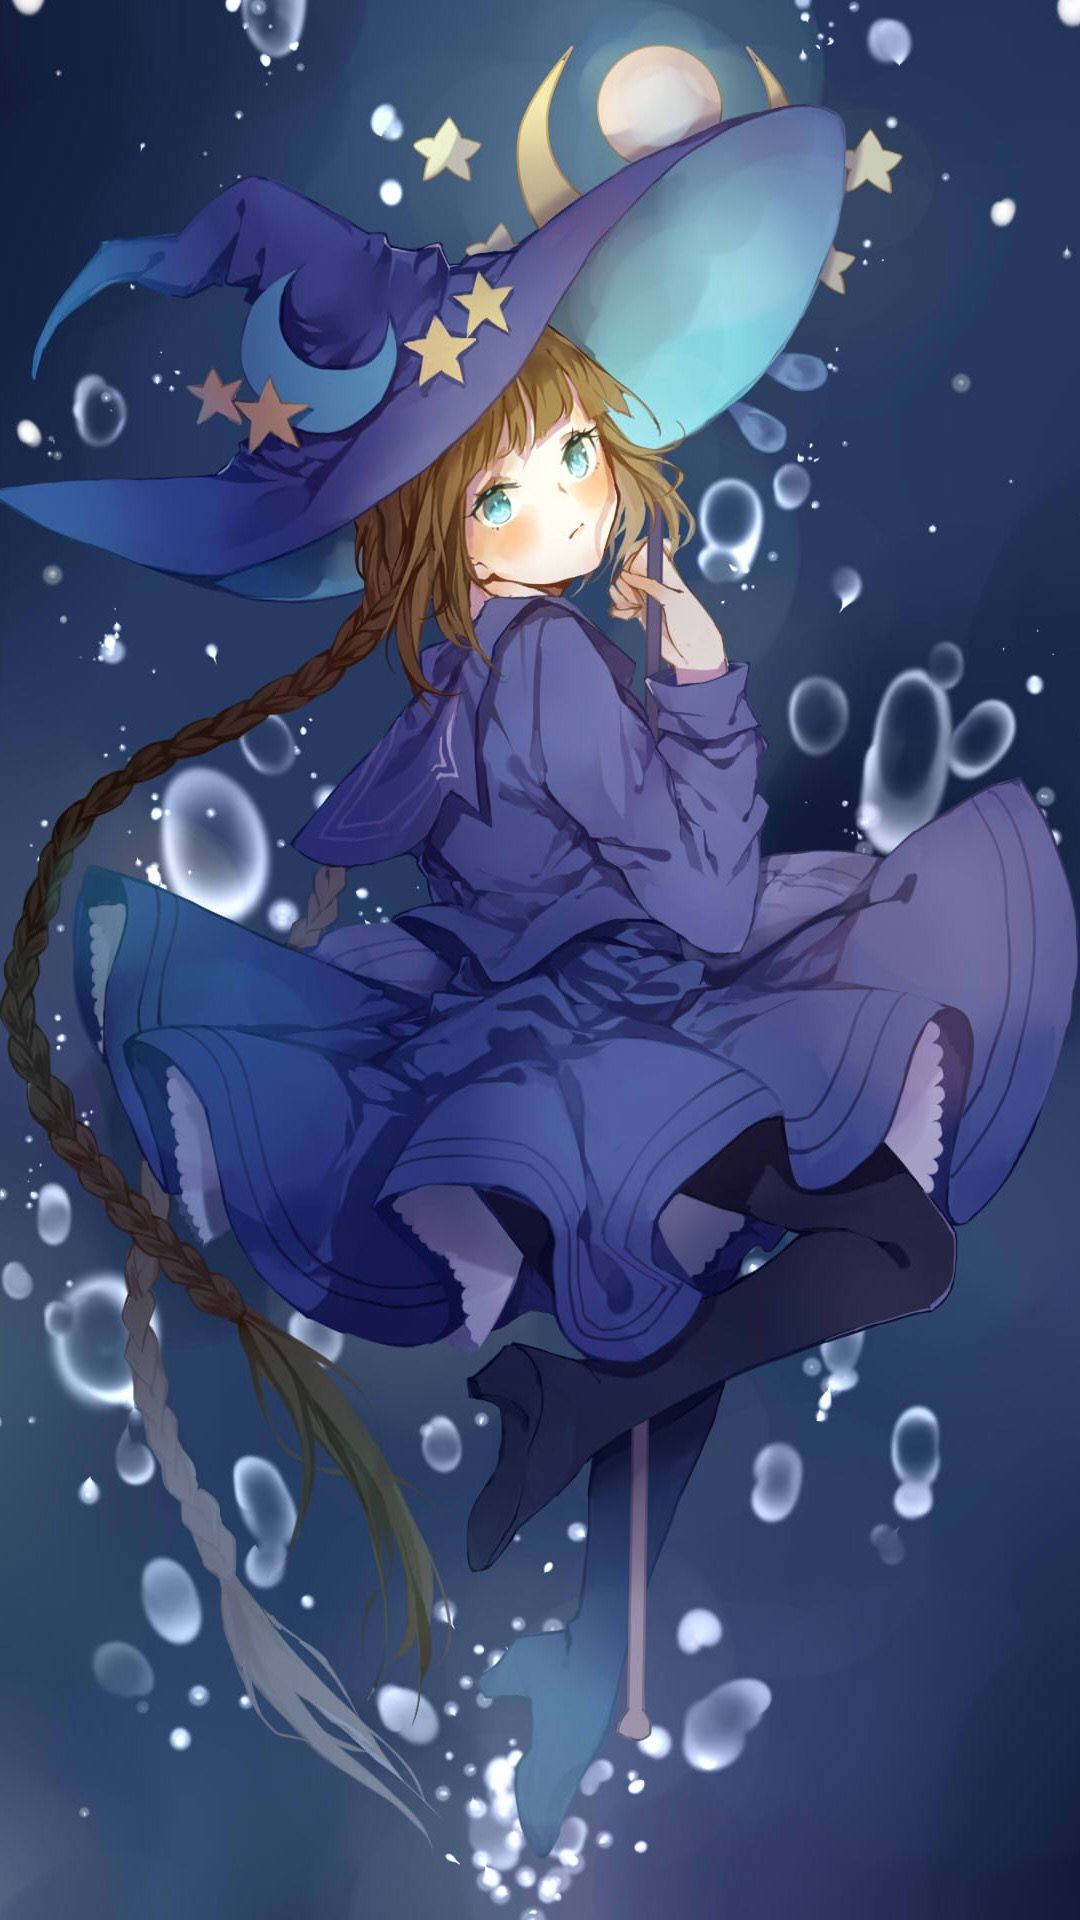 Pin by Lara on anime icons Anime witch, Anime, Kawaii anime